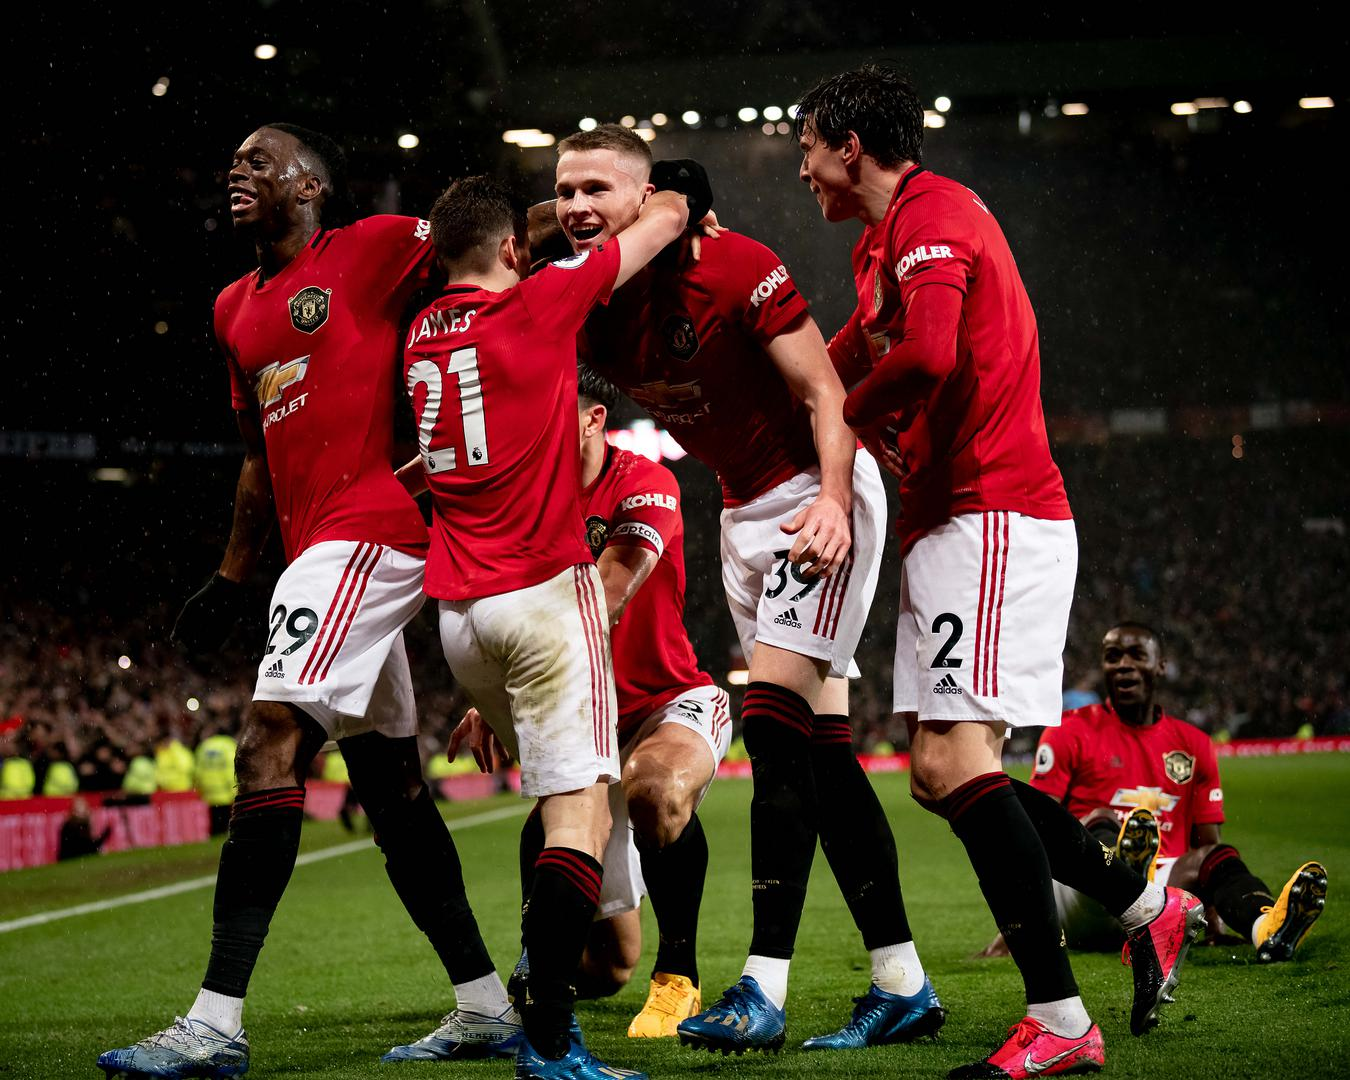 Manchester United celebrate after scoring against Man City